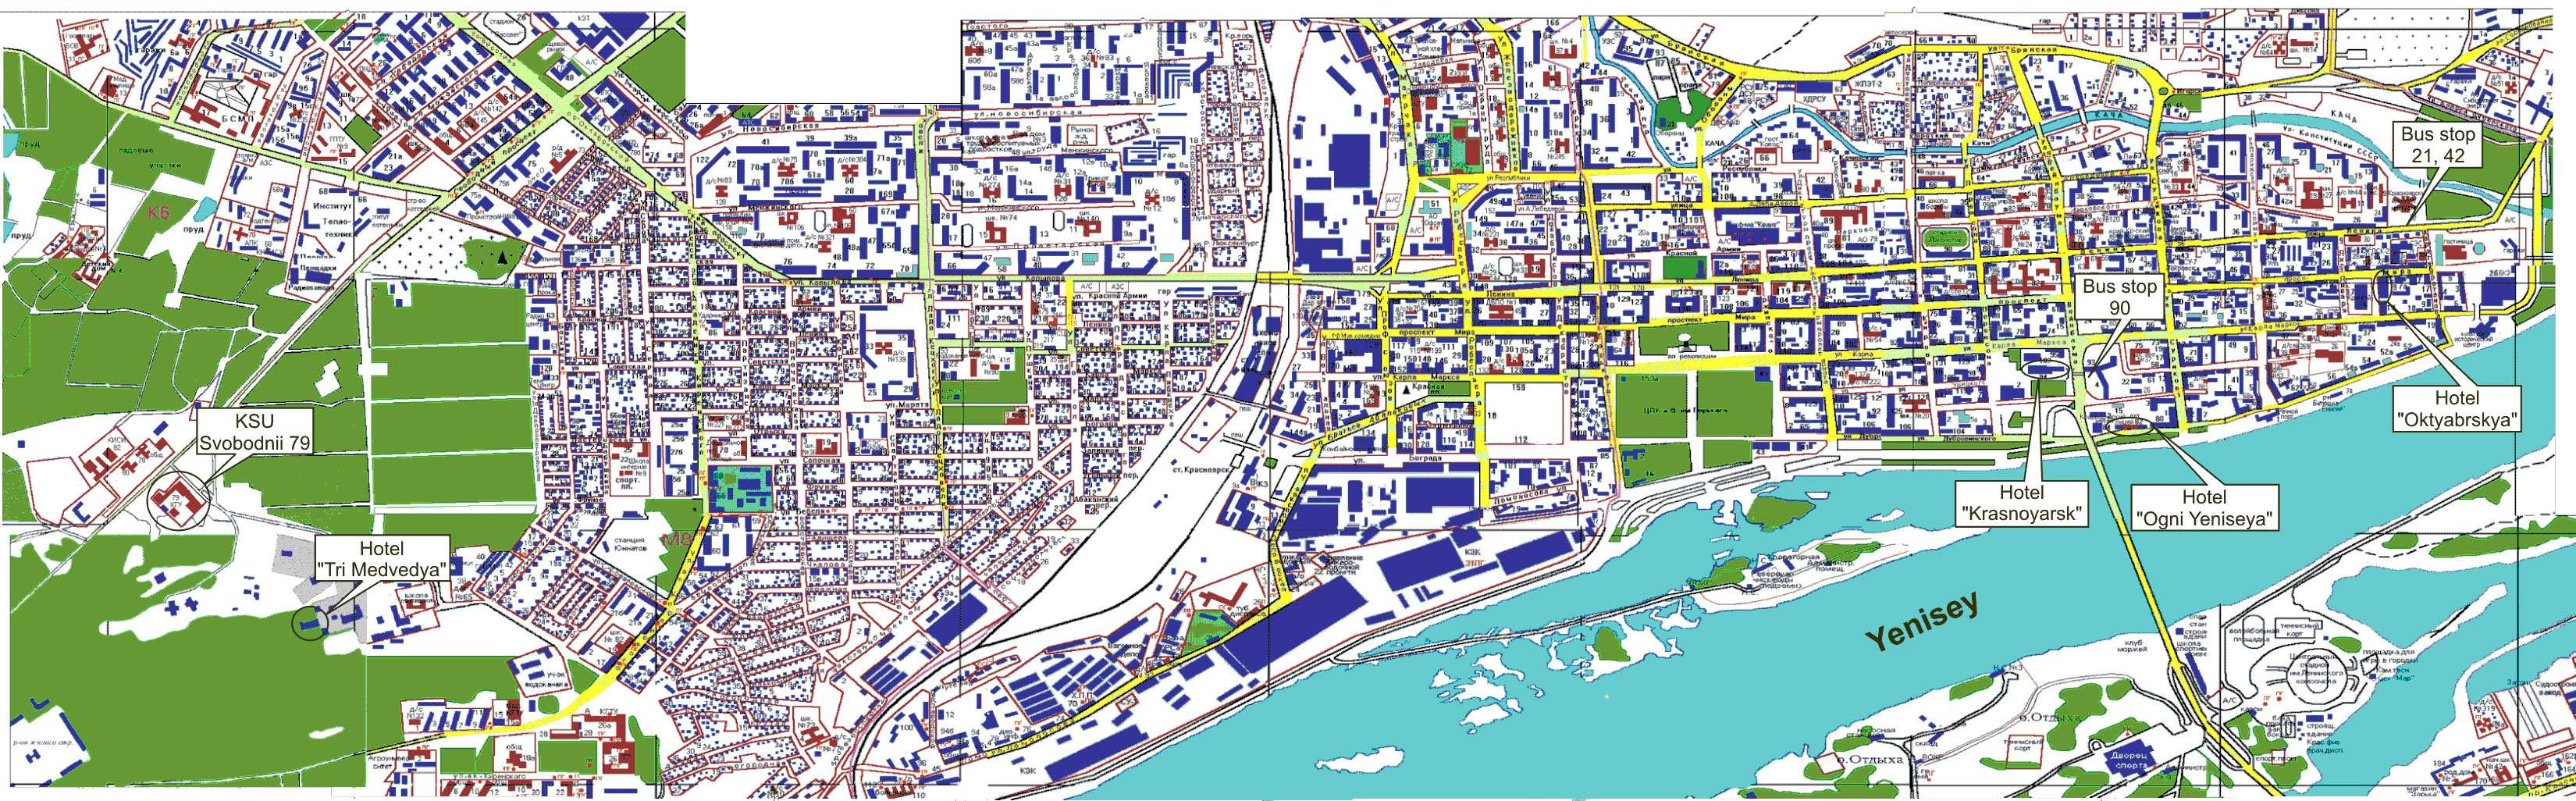 Large Krasnoyarsk Maps For Free Download And Print High - Detailed map of russia